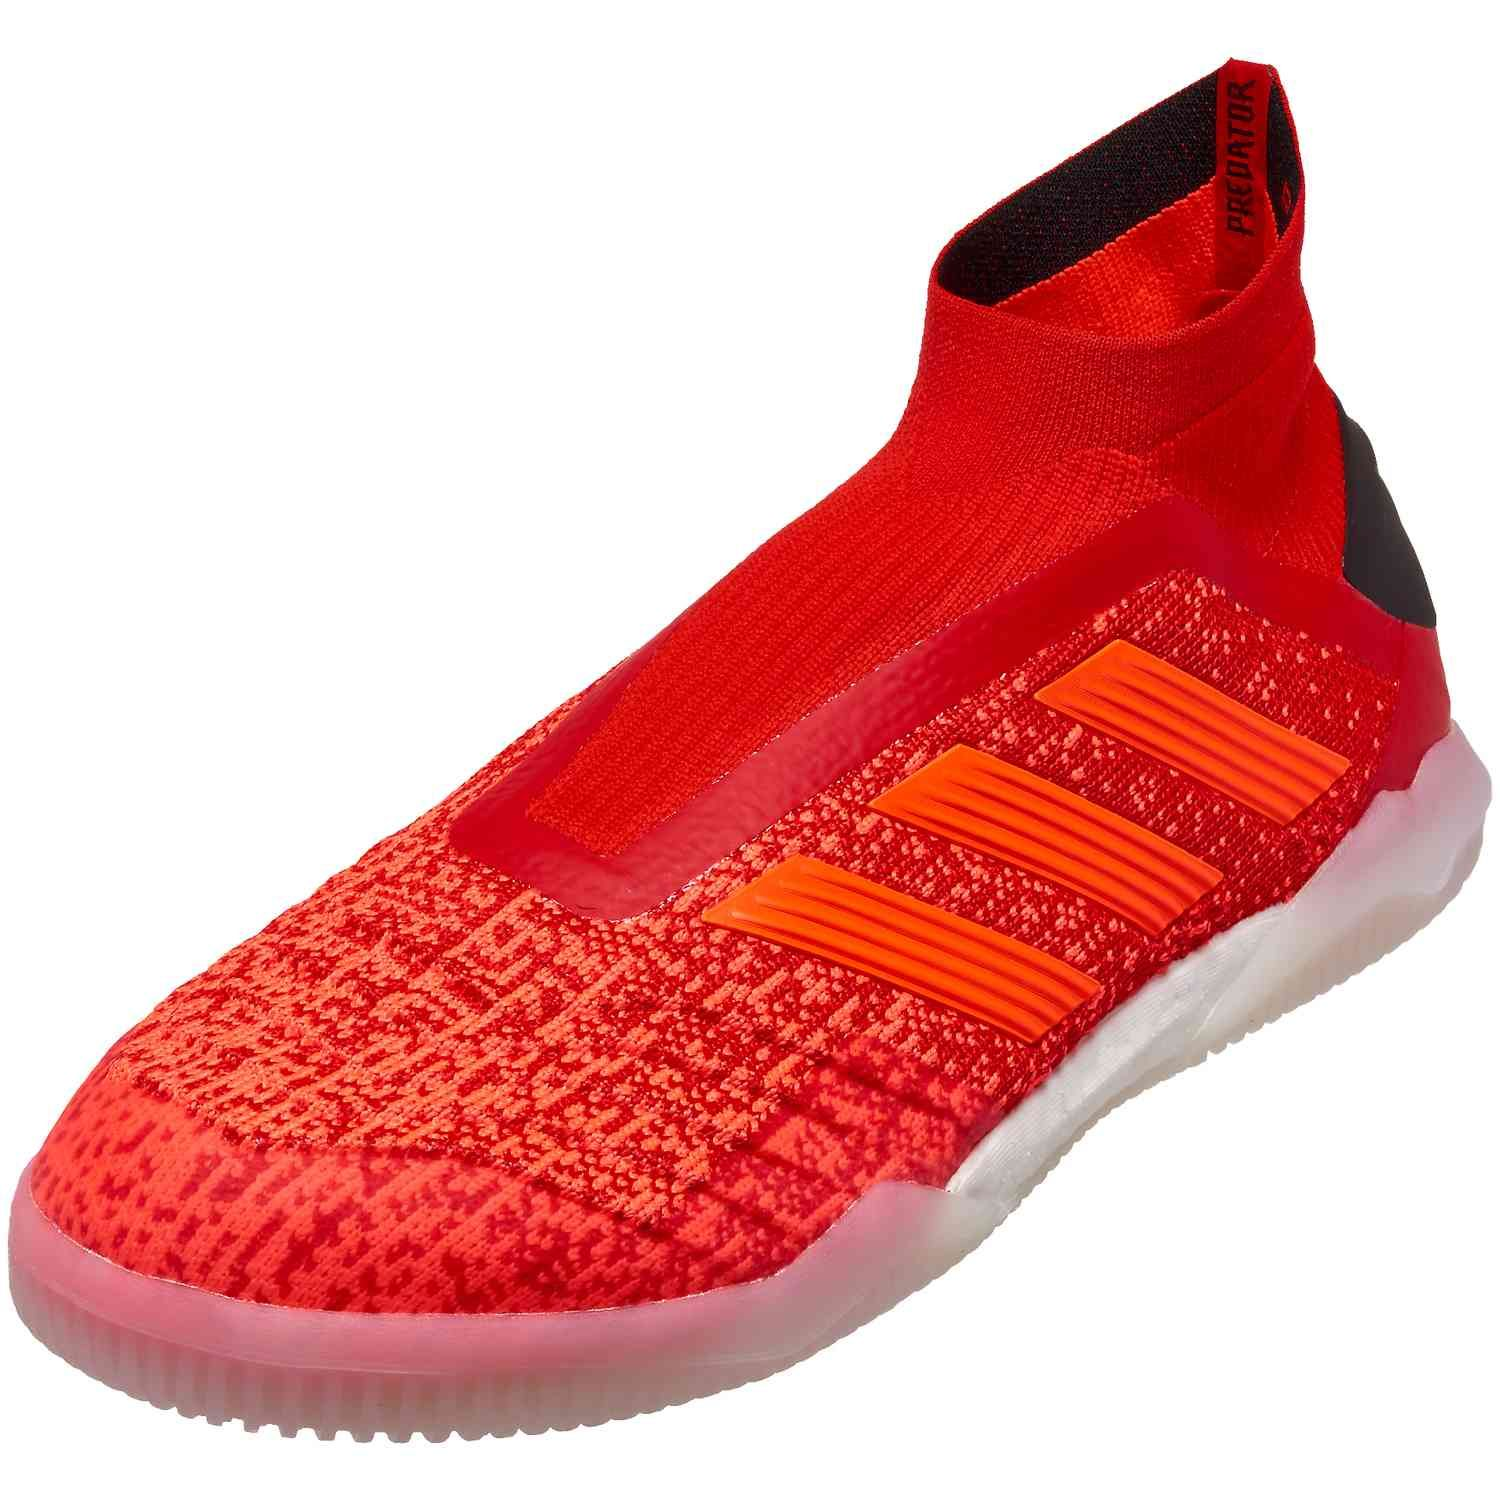 0f57bf4c420 adidas Predator Tango 19+ IN – Initiator Pack | Soccer Shoes ...